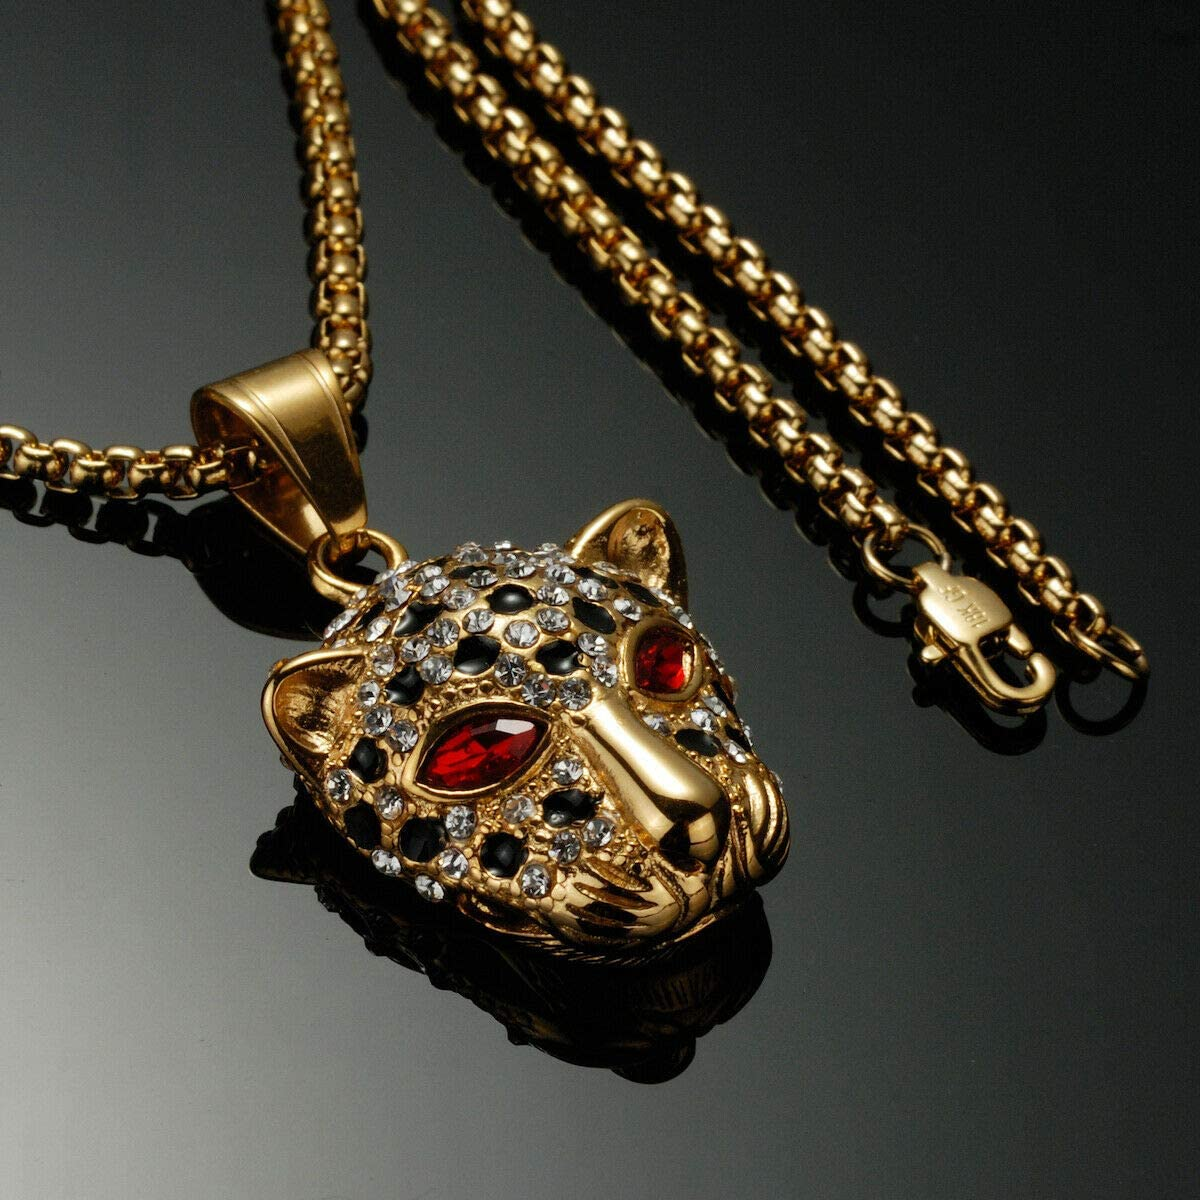 MASARWA Mens 18K Yellow Gold Stainless Steel Leopard Head Pendant Necklace Chain 60cmx2mm,with Velvet Pouch